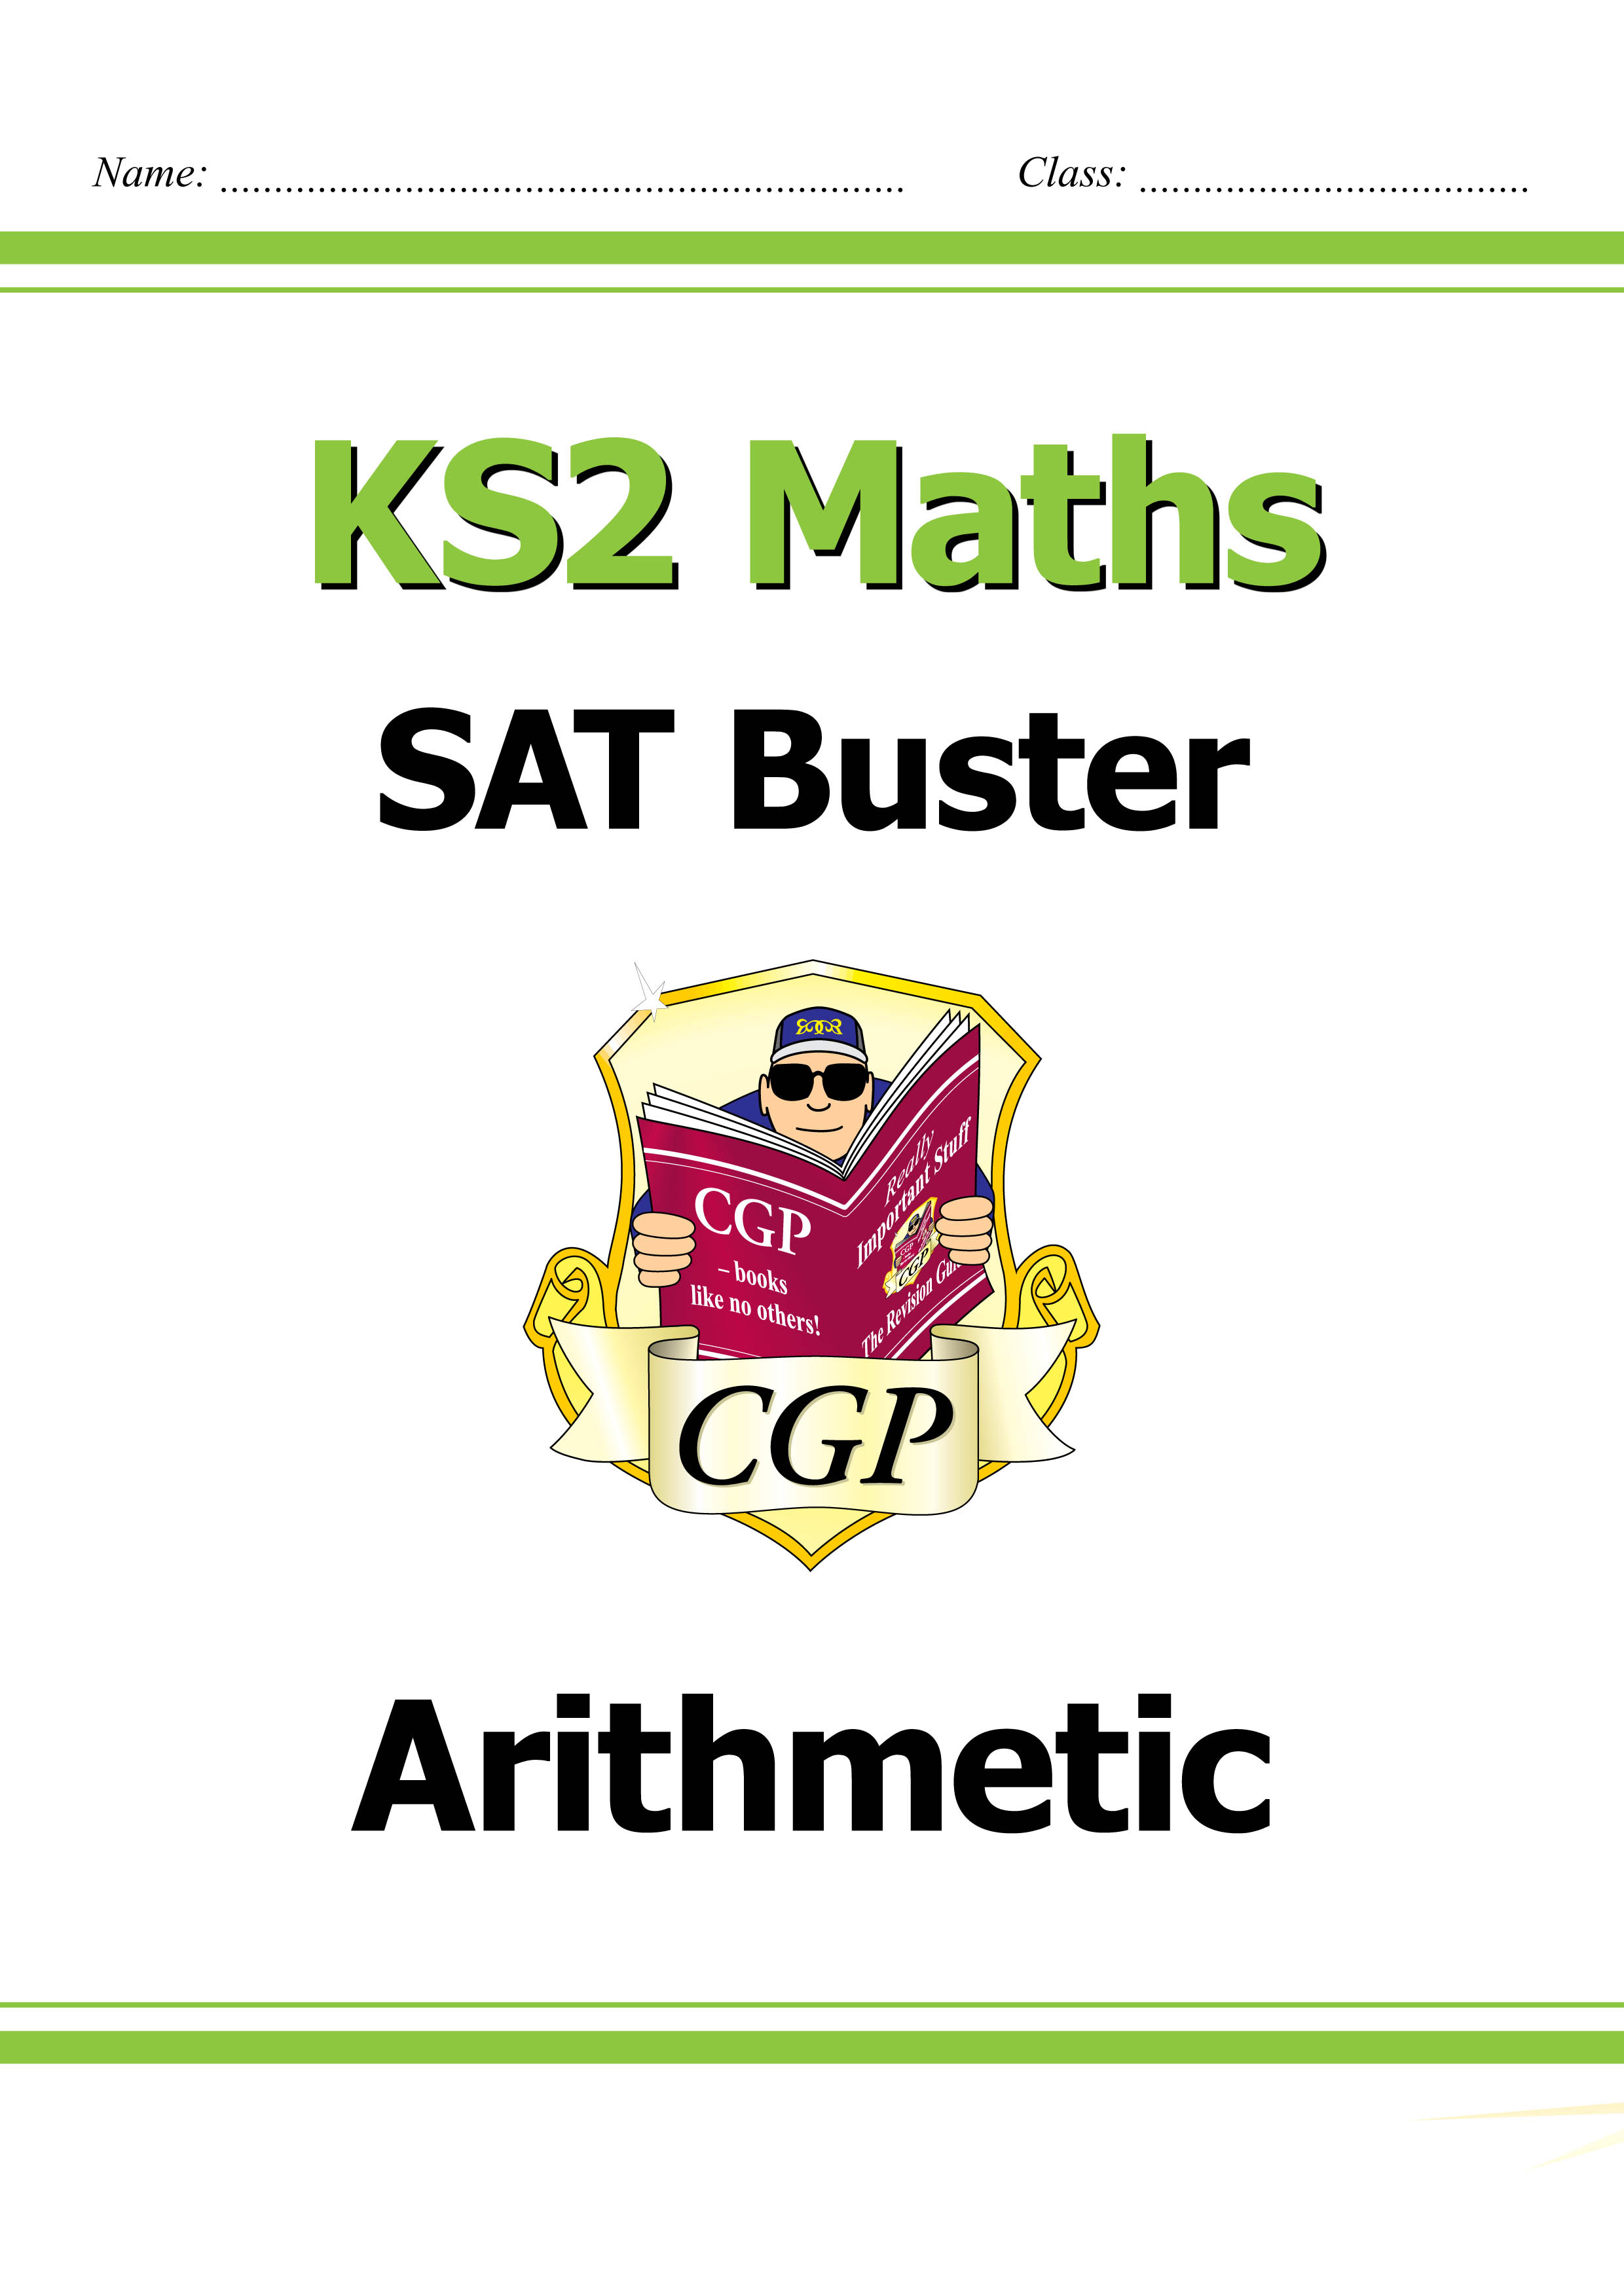 M6ARI23DK - KS2 Maths SAT Buster: Arithmetic (for tests in 2018 and beyond)